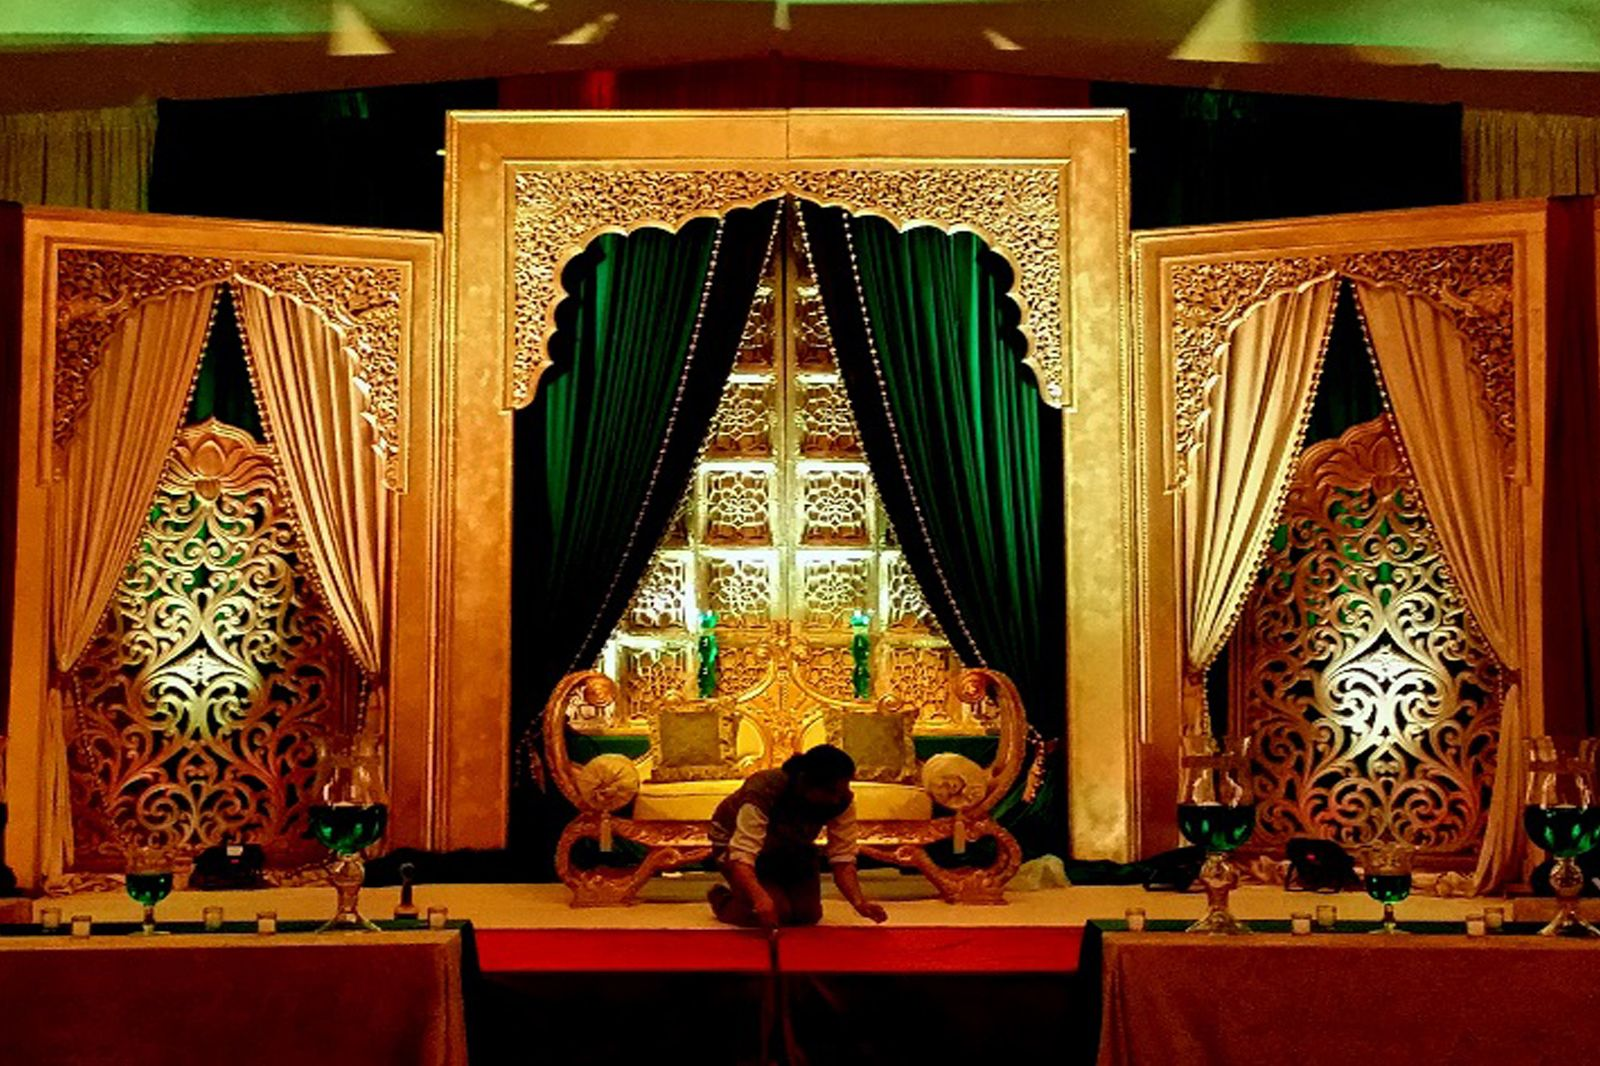 Wedding decoration stage ideas  Indian wedding decorations  Mehndi   Pinterest  More Indian